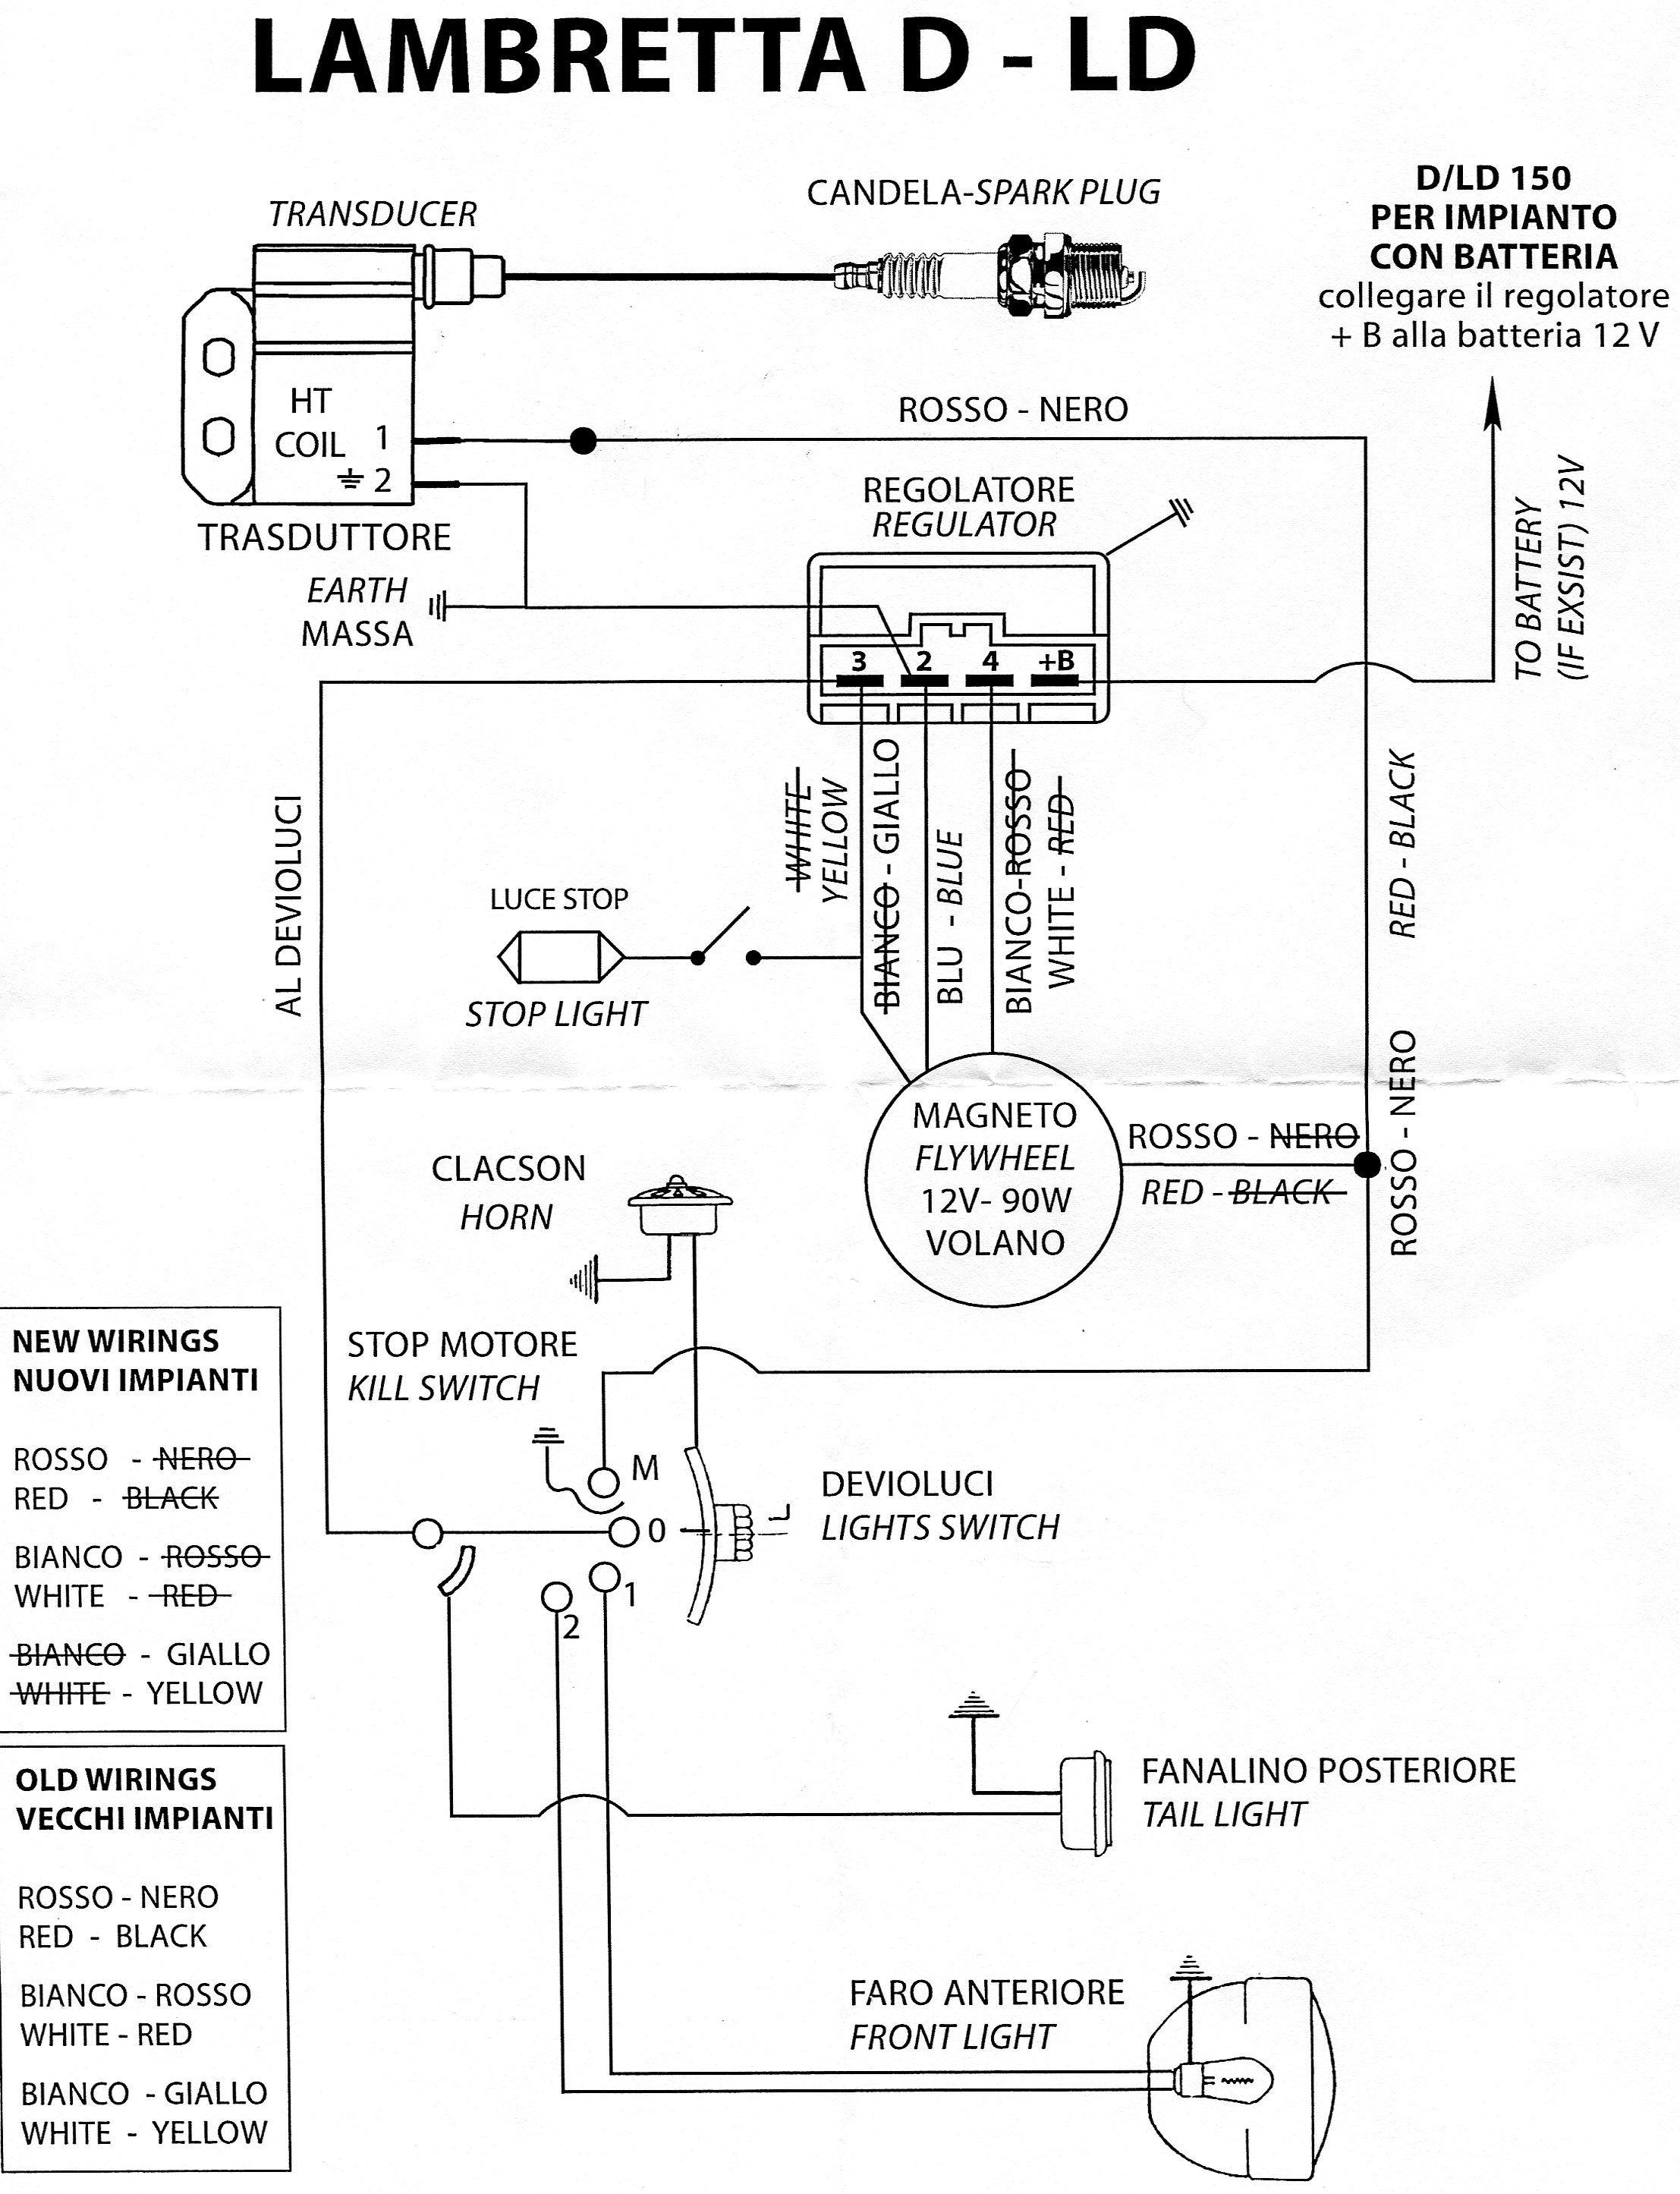 lambretta wiring diagram with indicators spa circuit board zündung evergreen variotronic ld d 150